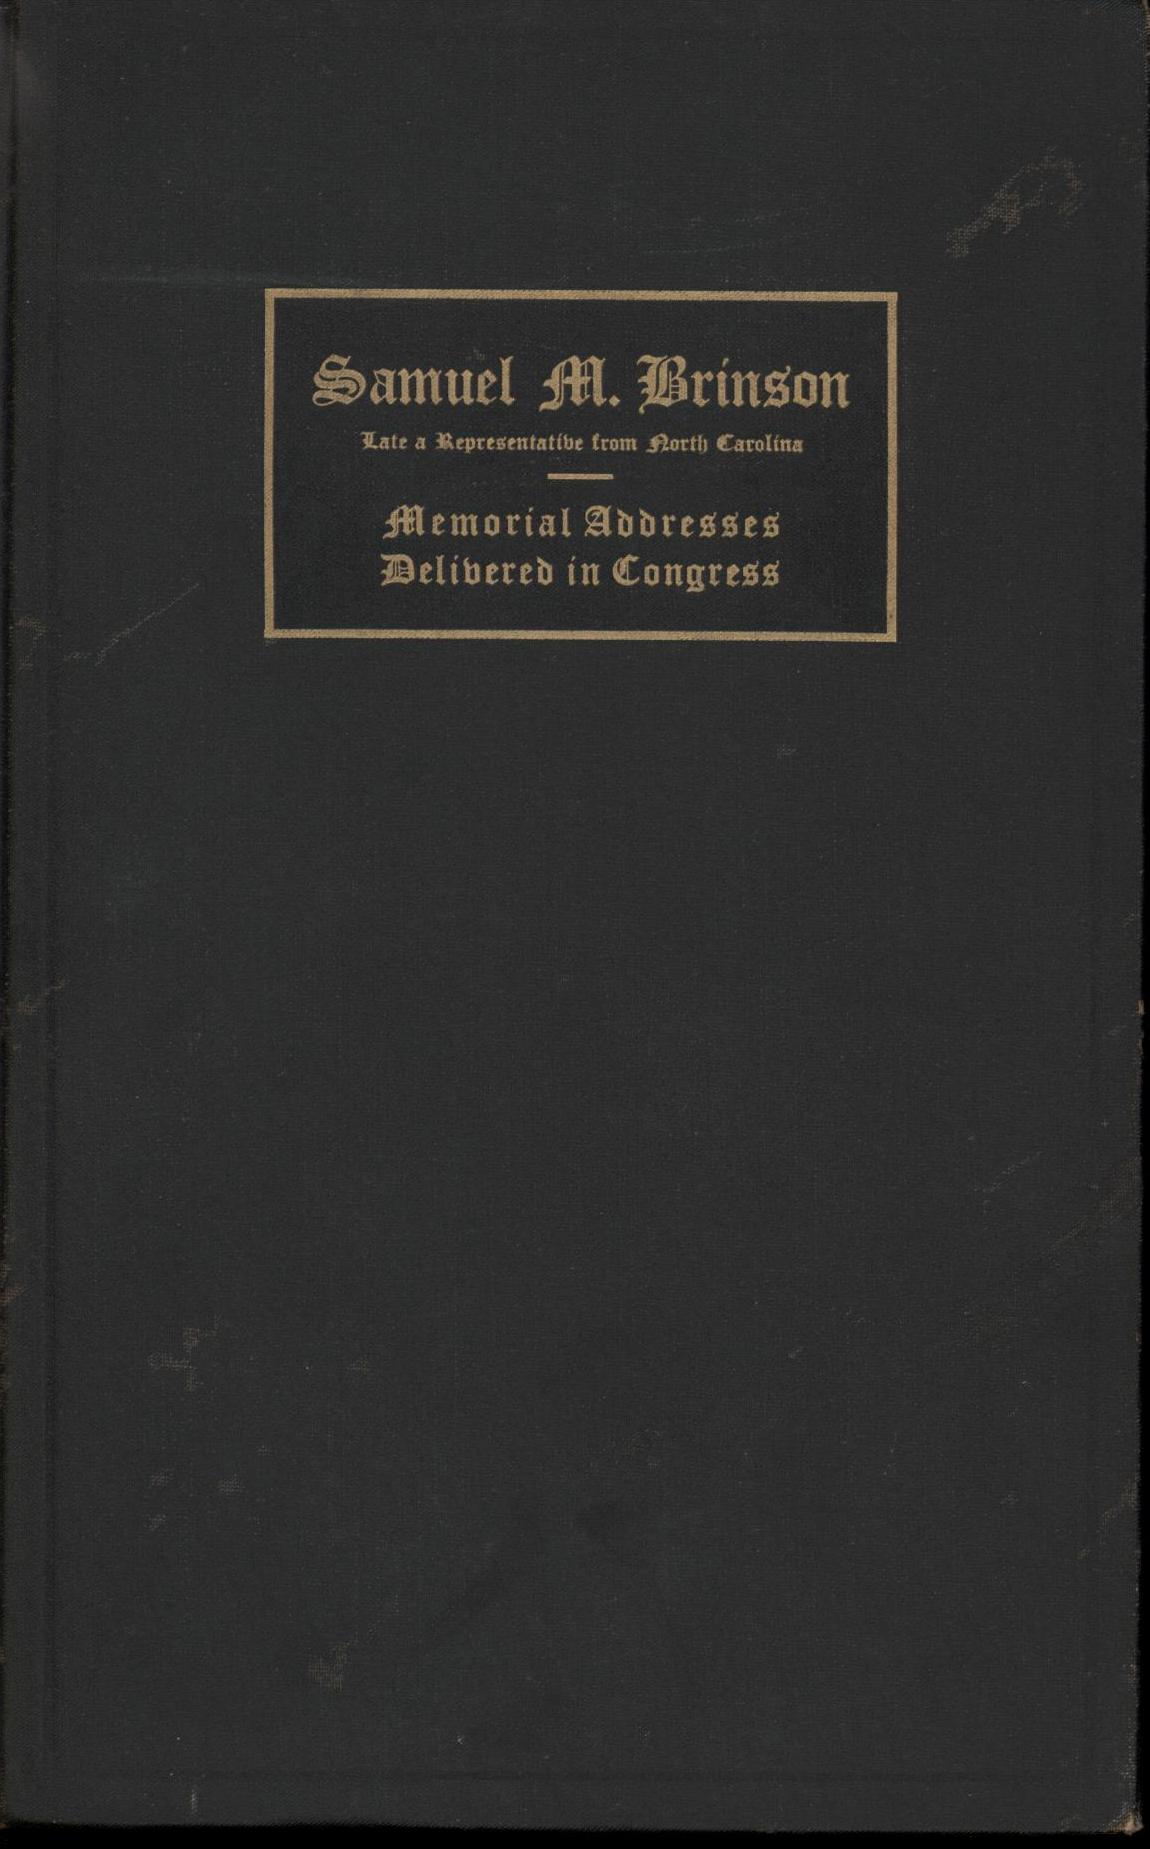 Image for Samuel M. Brinson: Memorial Addresses delivered in the House of Representatives of the United States...Sixty-Seventh Congress February 11, 1923 (First Edition)